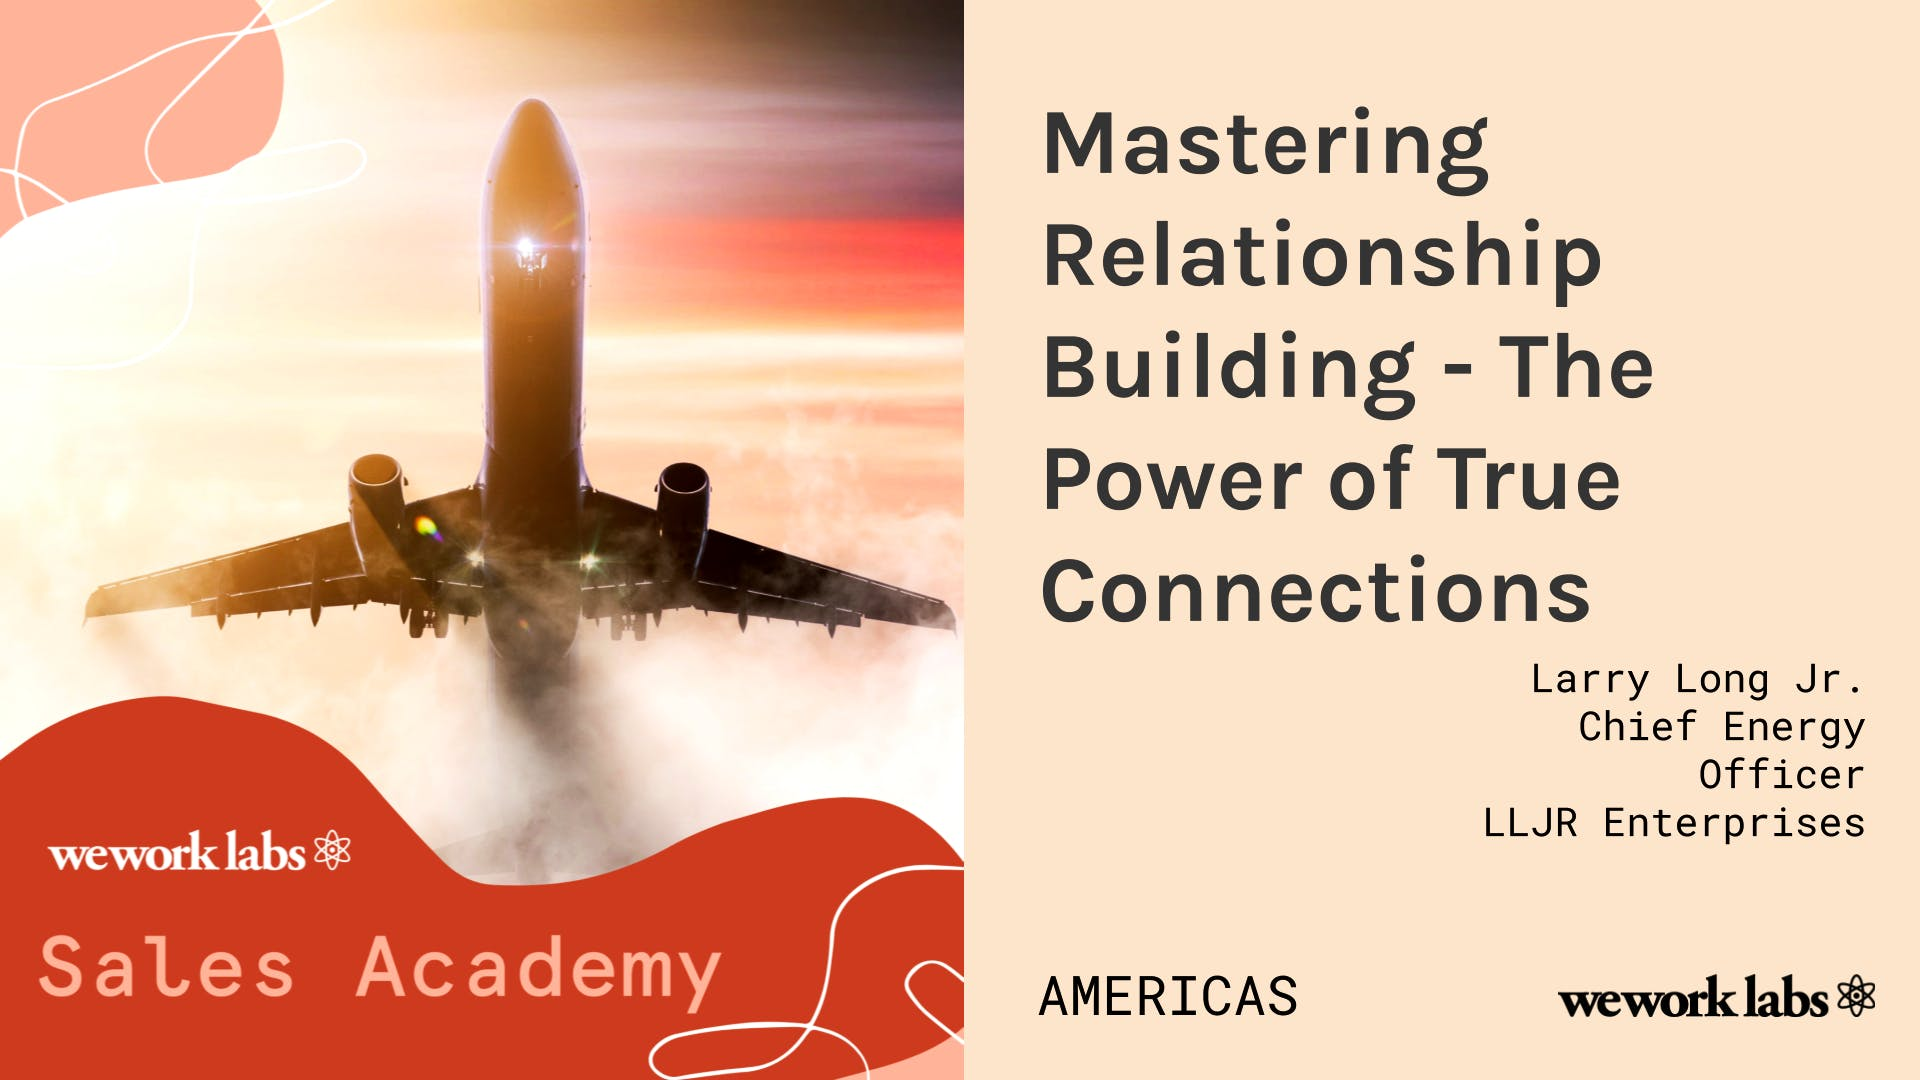 Sales Academy (Americas): Mastering Relationship Building - The Power of True Connections